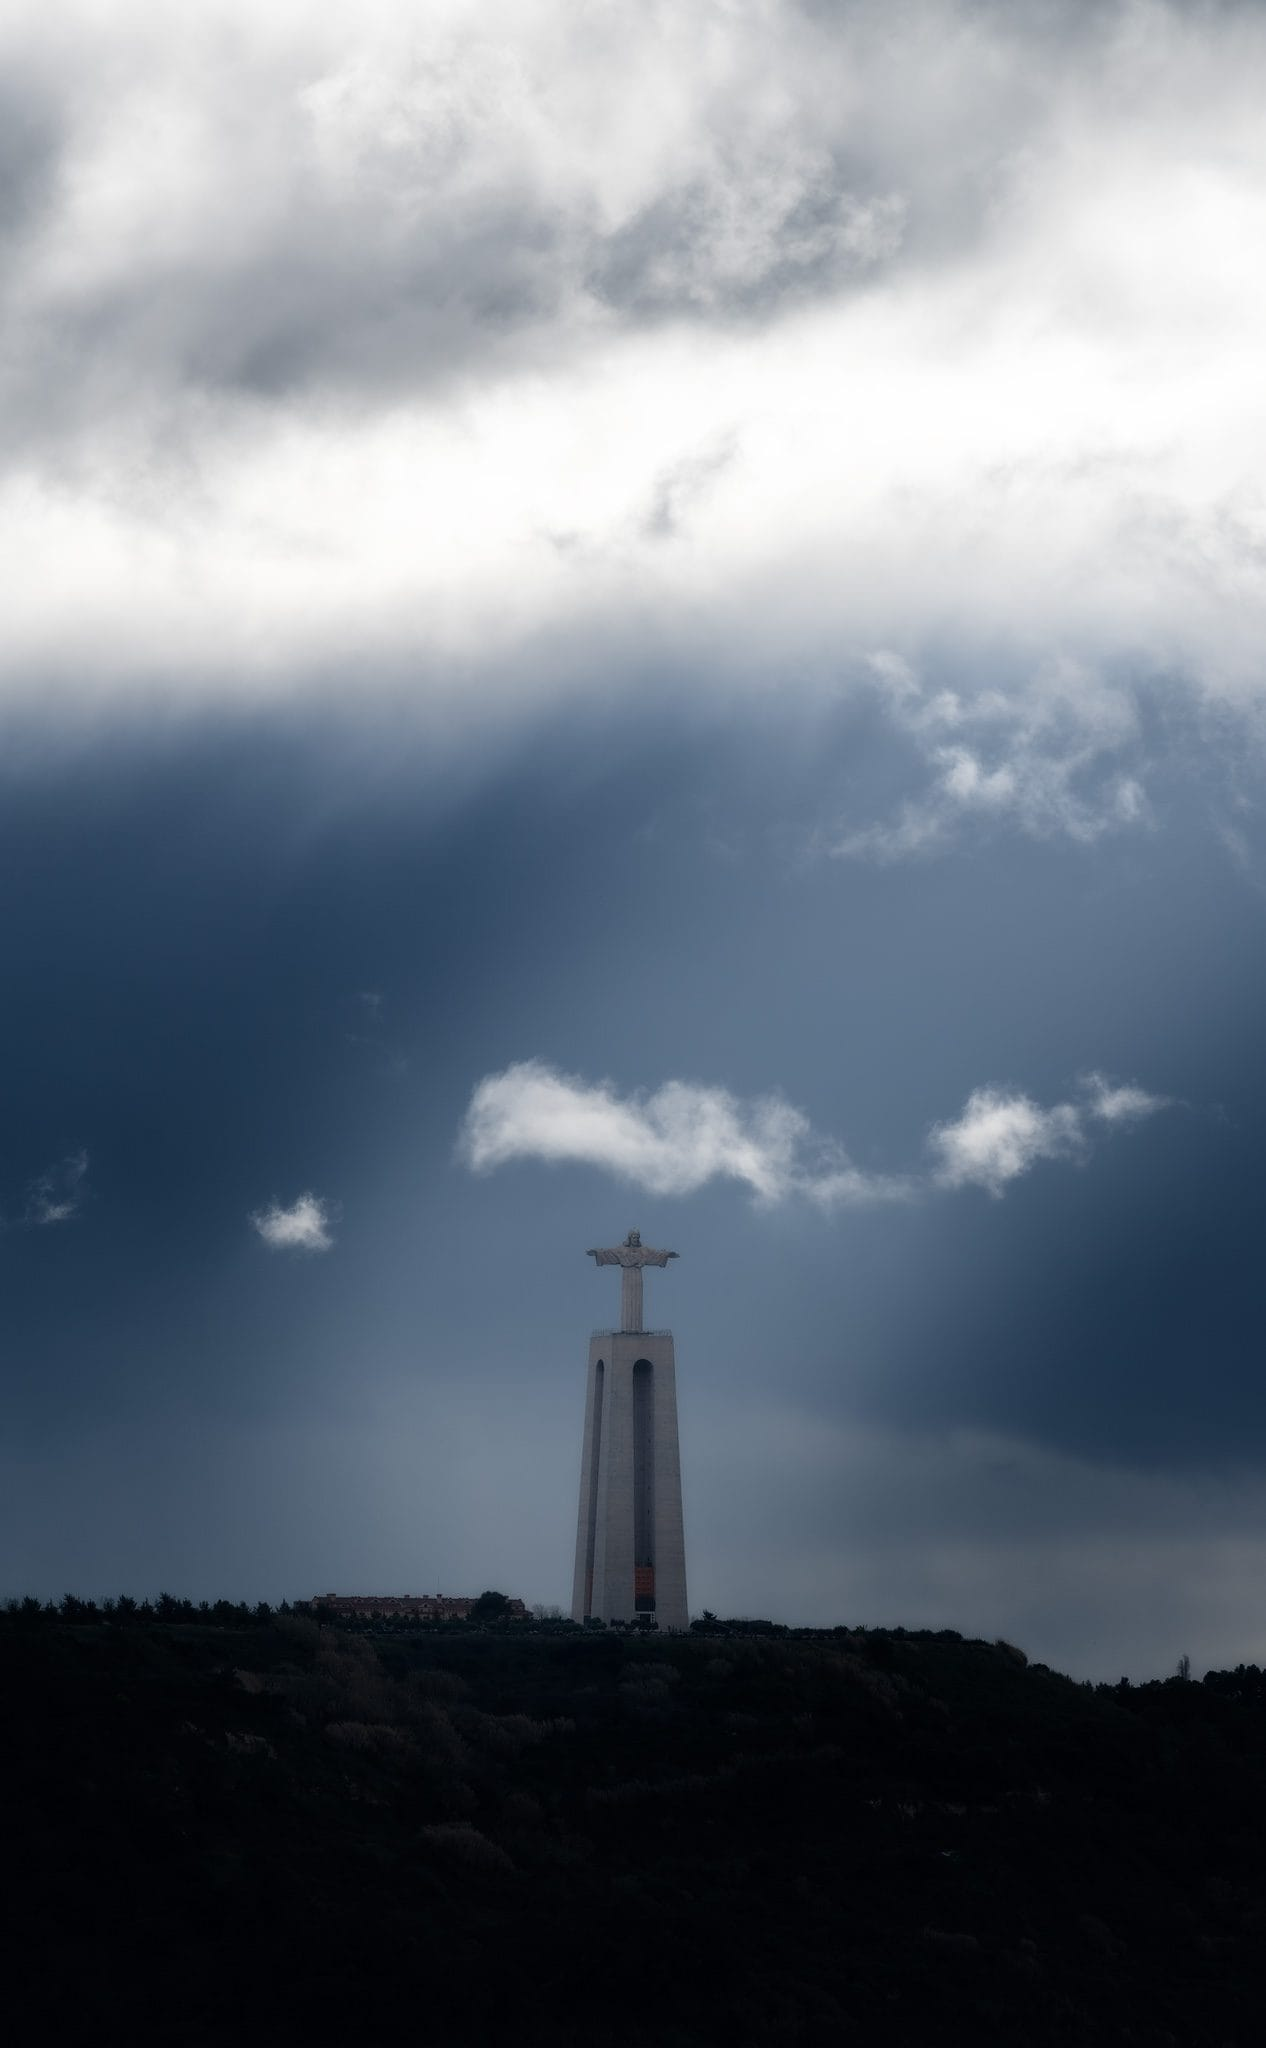 Cristo Rei (Statue of Jesus Christ the King) in Almada opposite to Lisbon, Portugal.